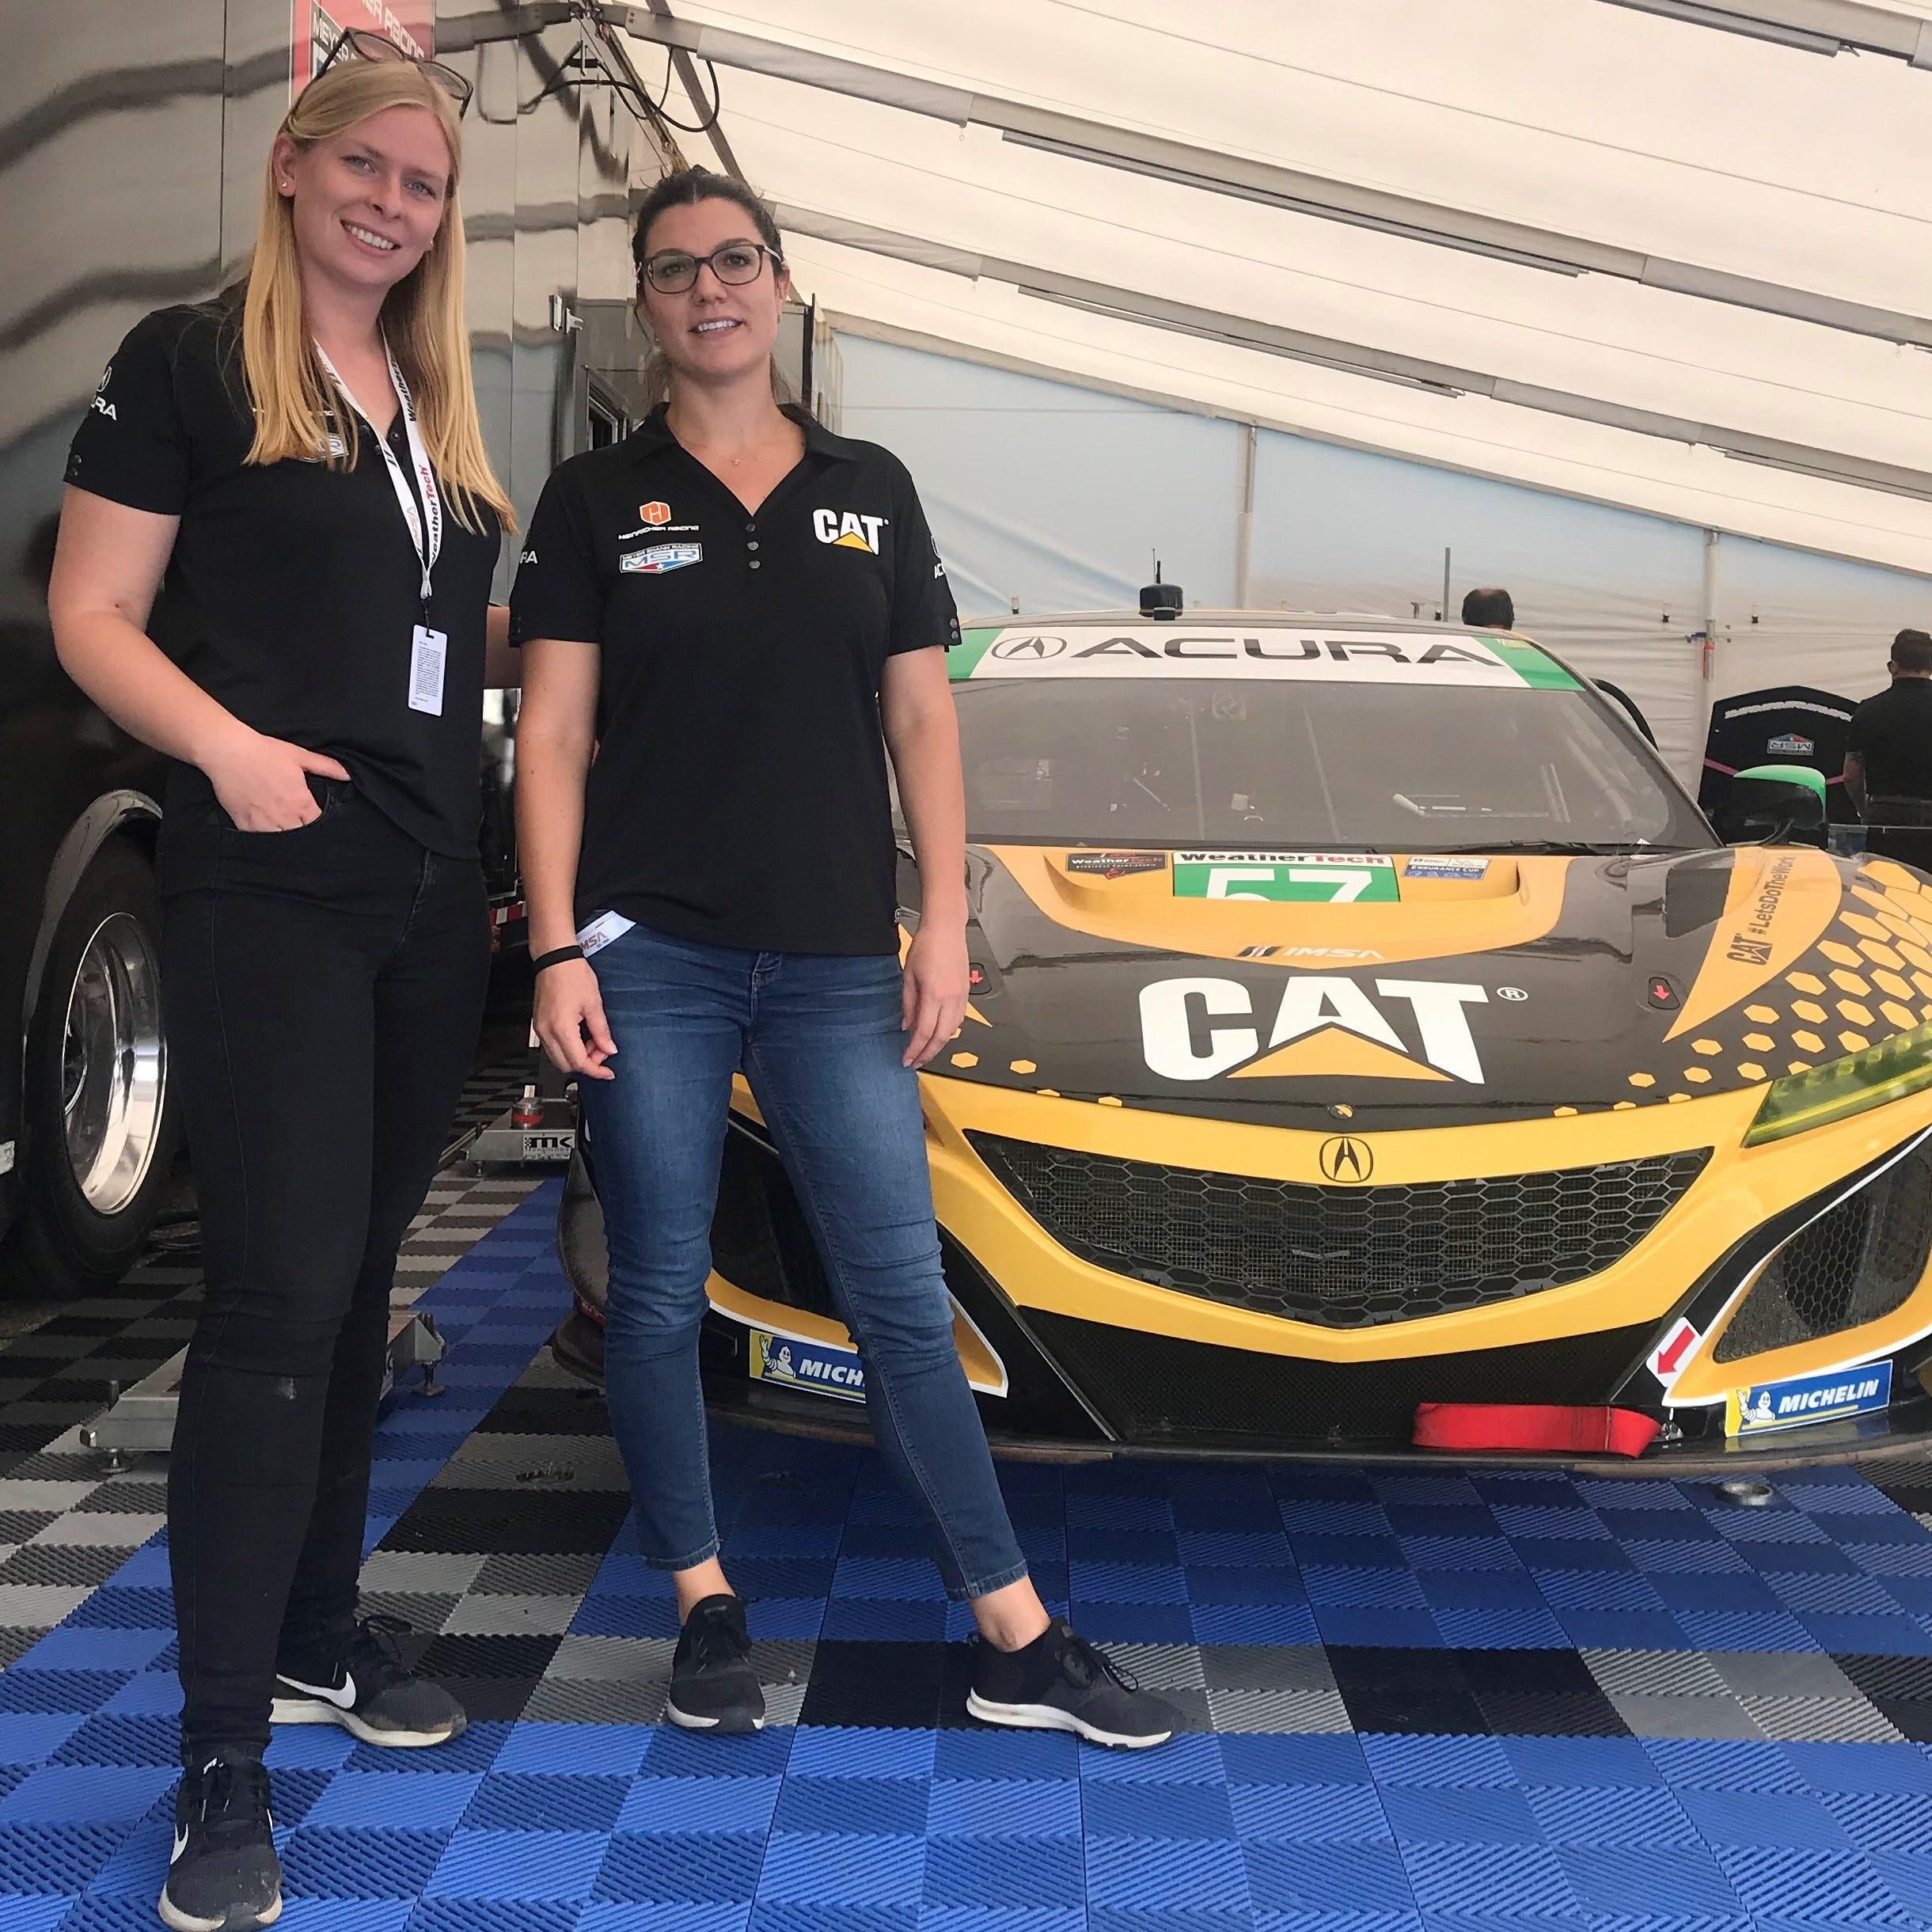 Girl Power: Nielsen, Legge ready to take sports car racing by storm as all-female team